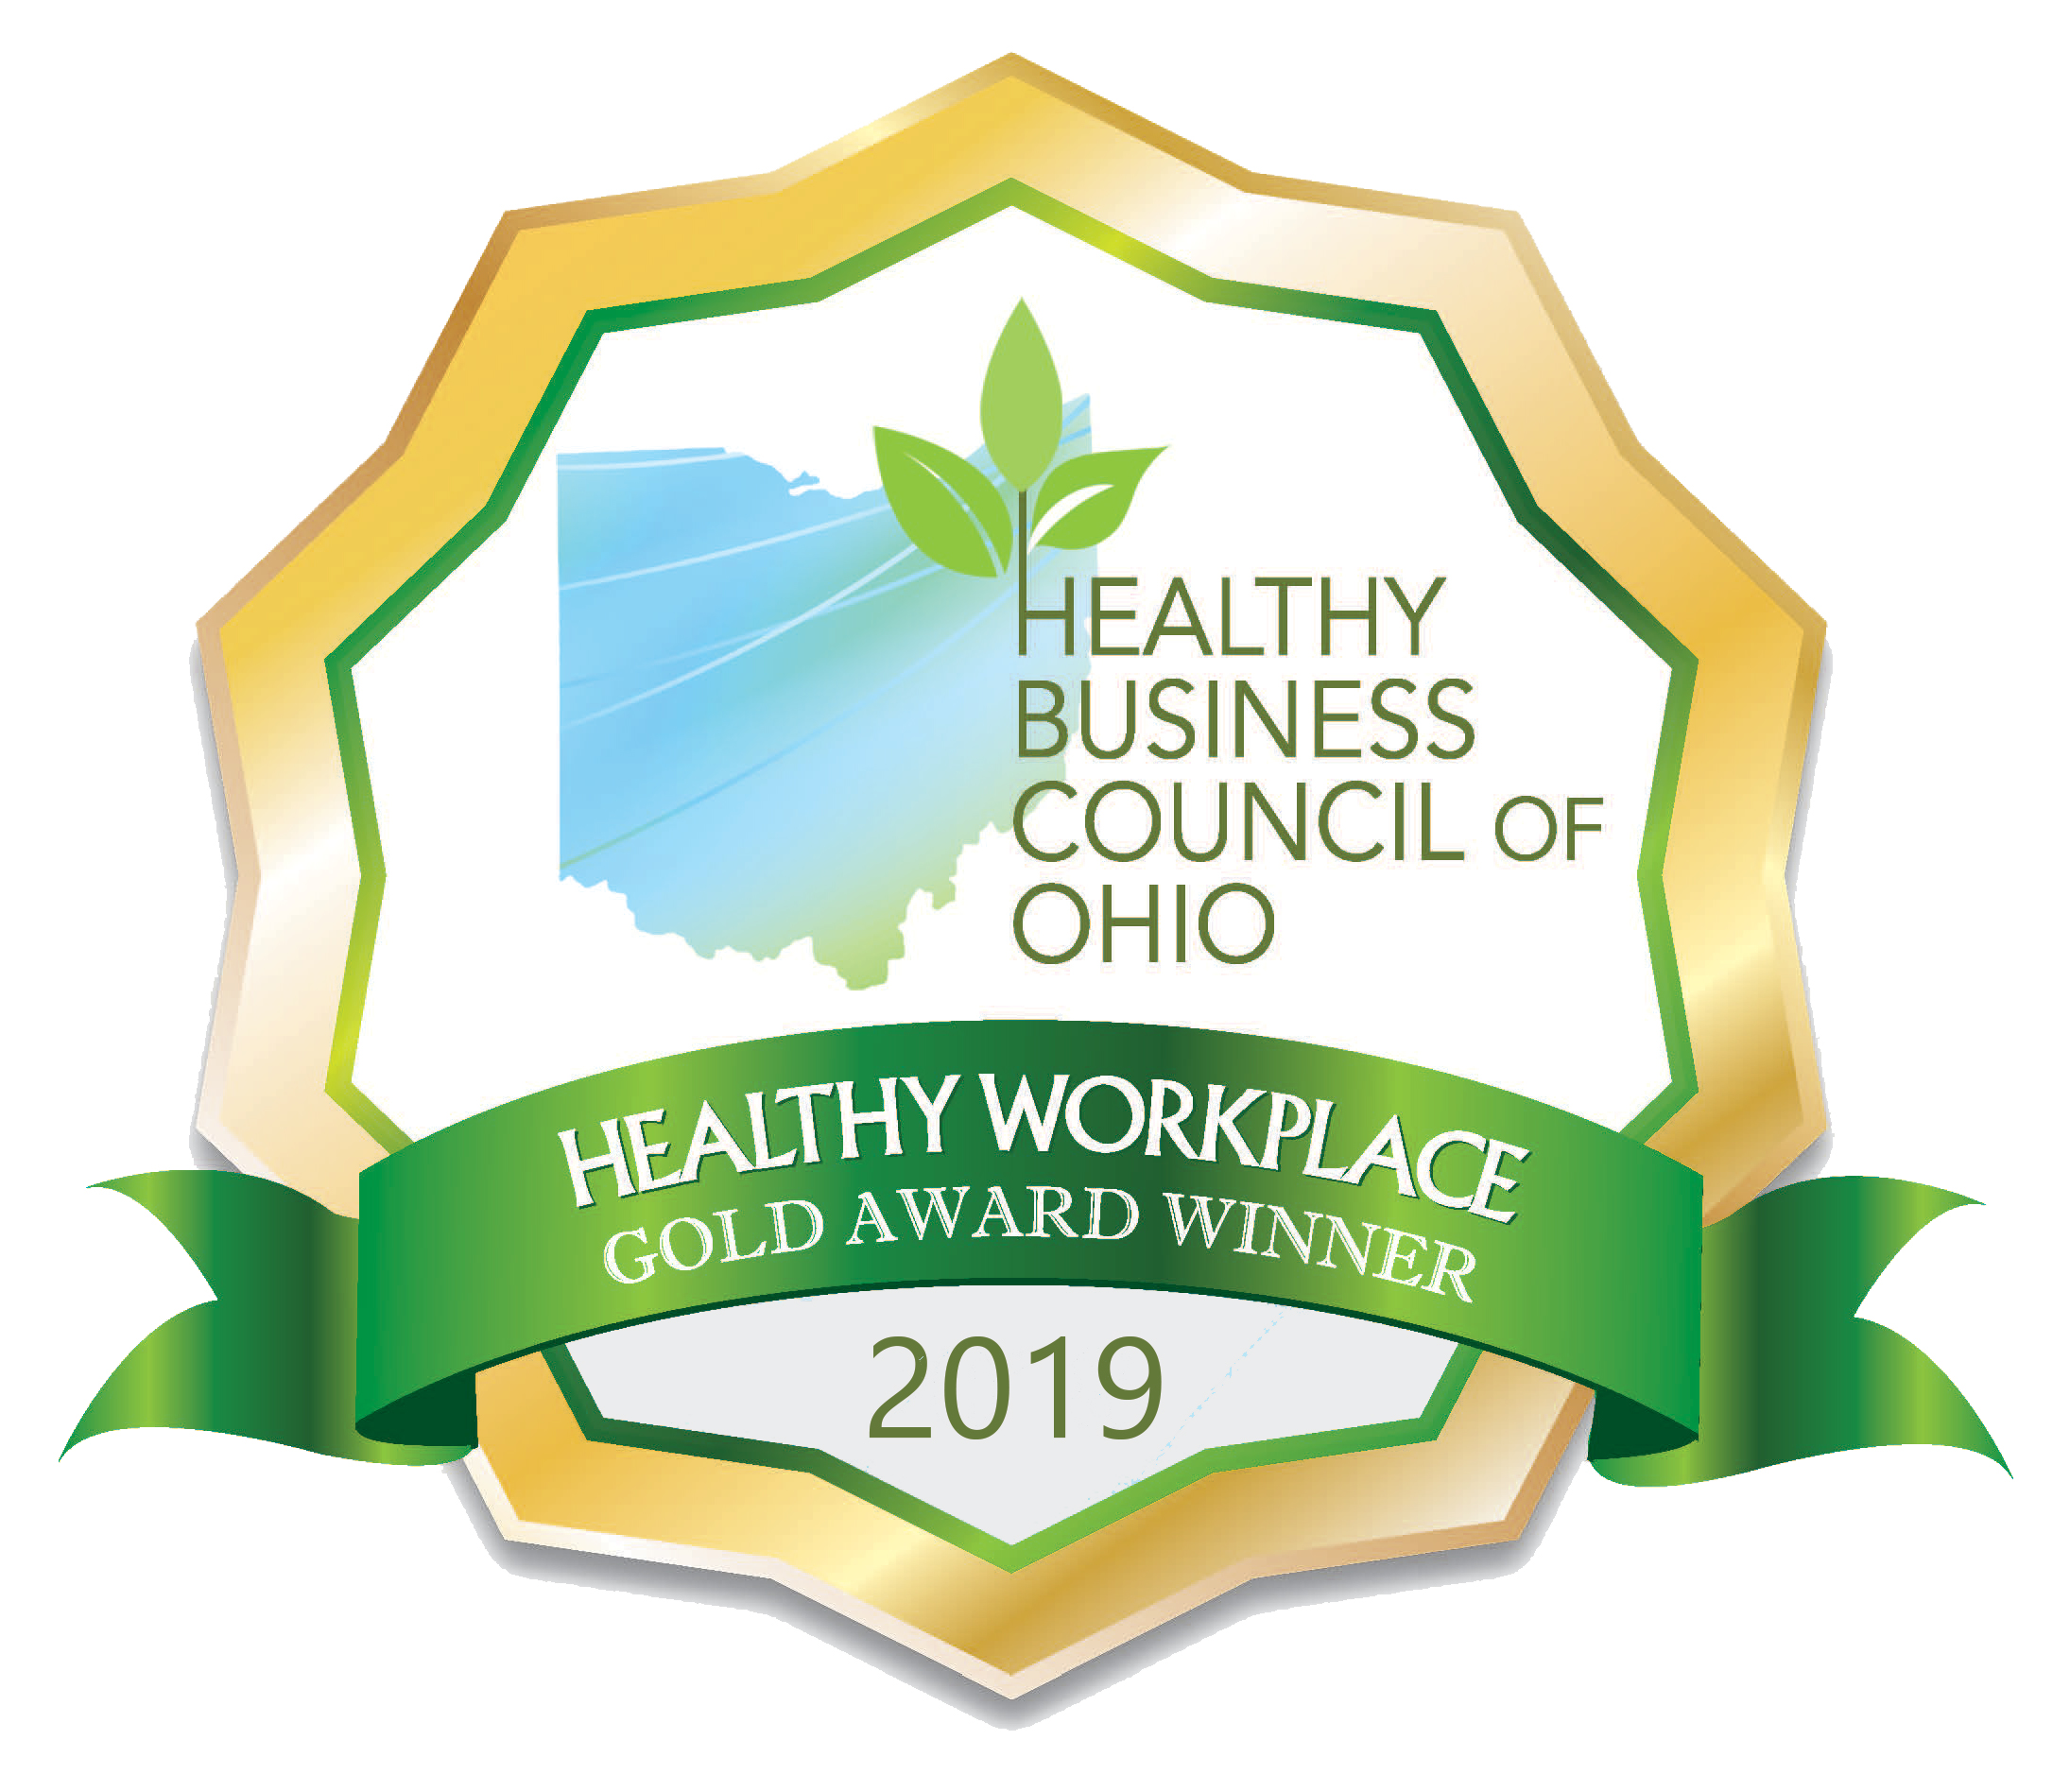 Healthy Workplace Gold Award Winner